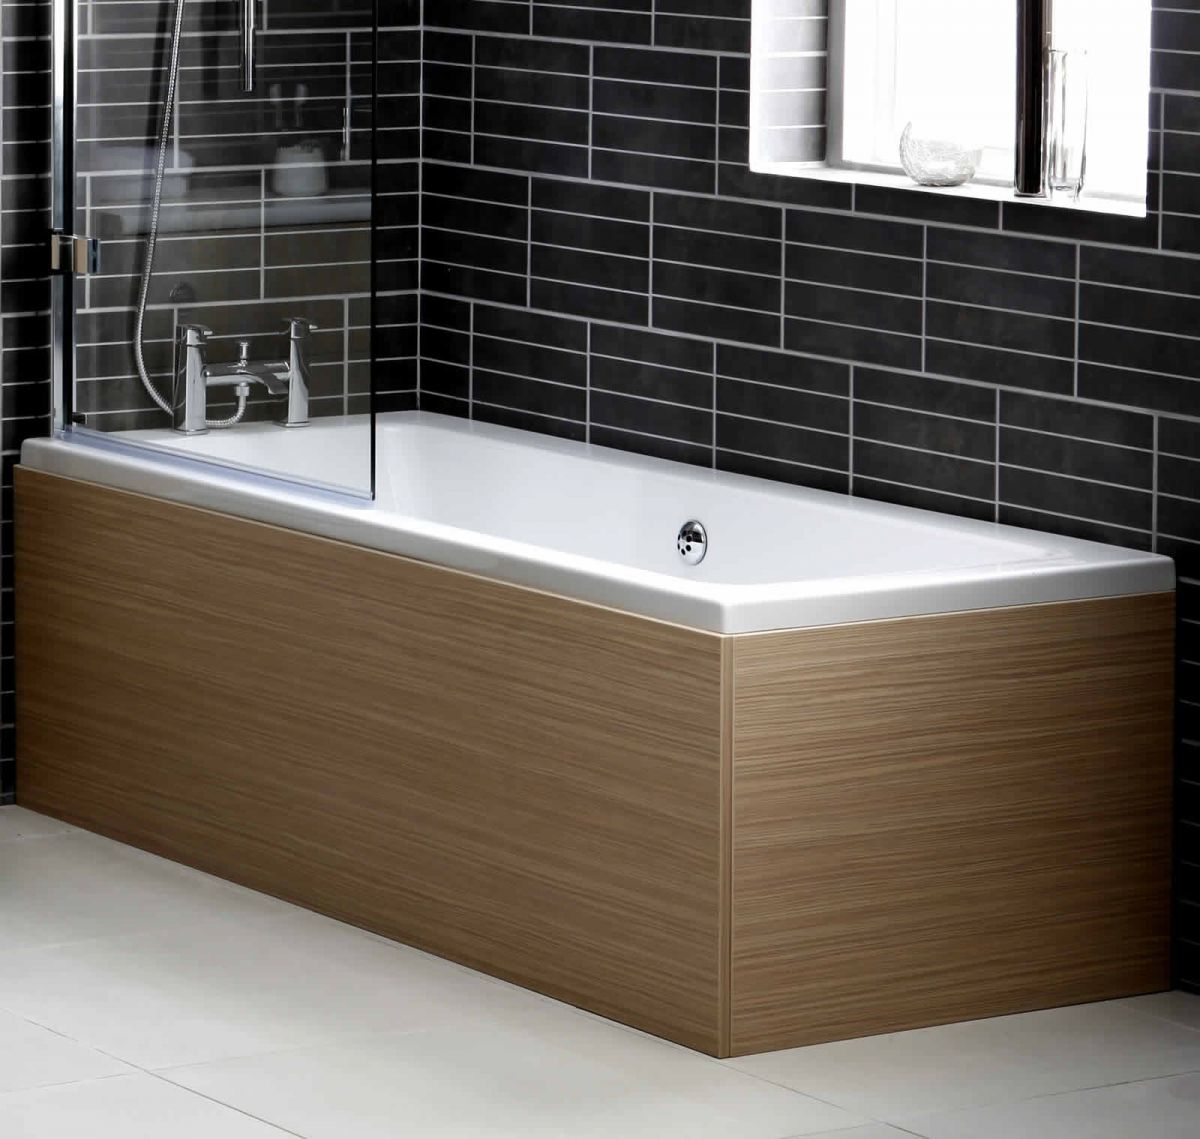 Innovative The Modular Furniture Units Are Placed Against The Wall In The Bathrooms They Dont Come With Filler Panels Which Provide More Extra Space At Its Each Ends They Match The Modern Bathroom Designs More Than The Classic Ones